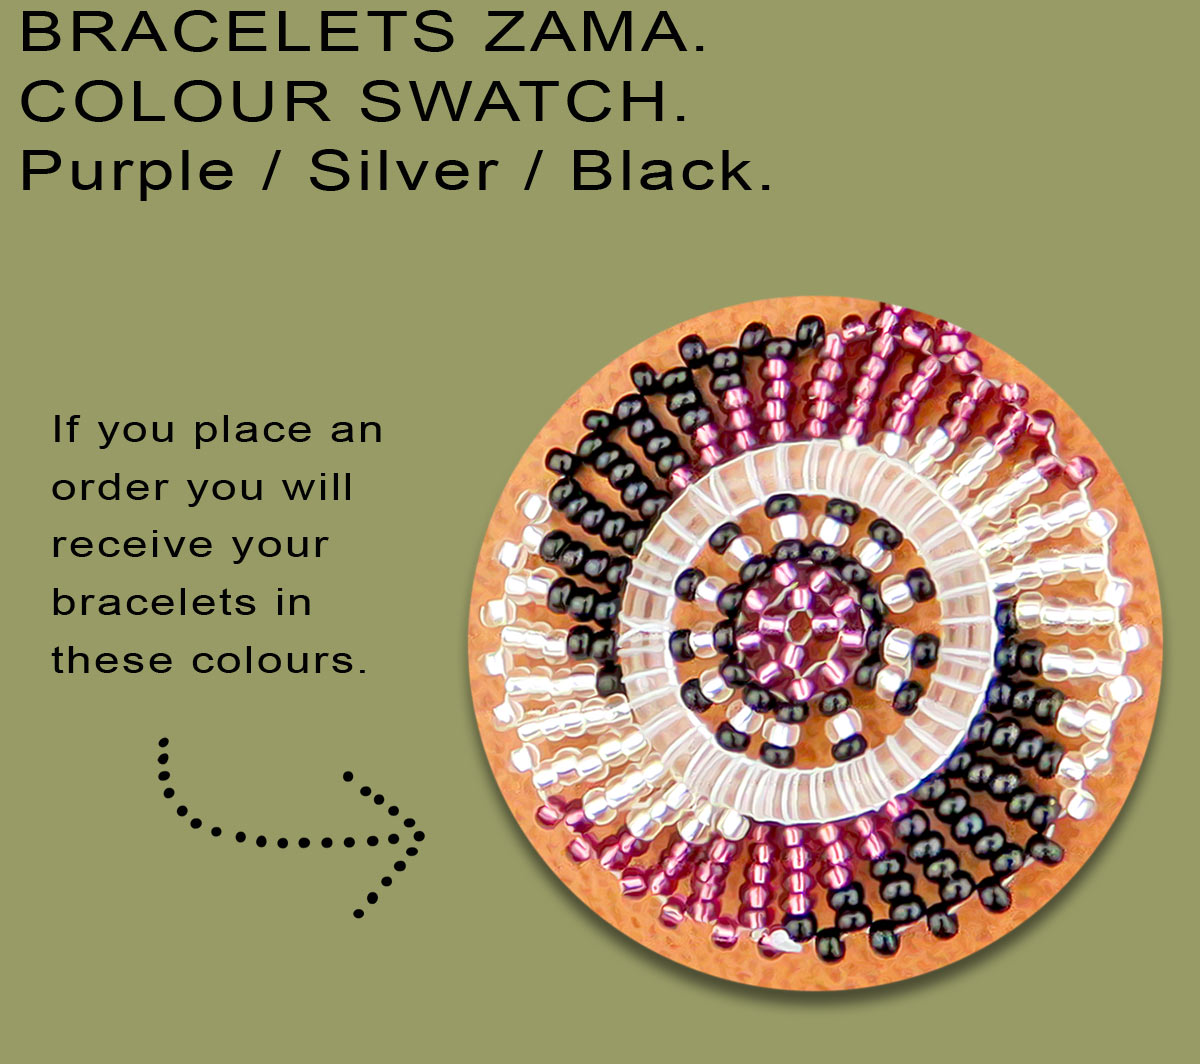 African Beaded Bracelets Zama Purple Silver Black